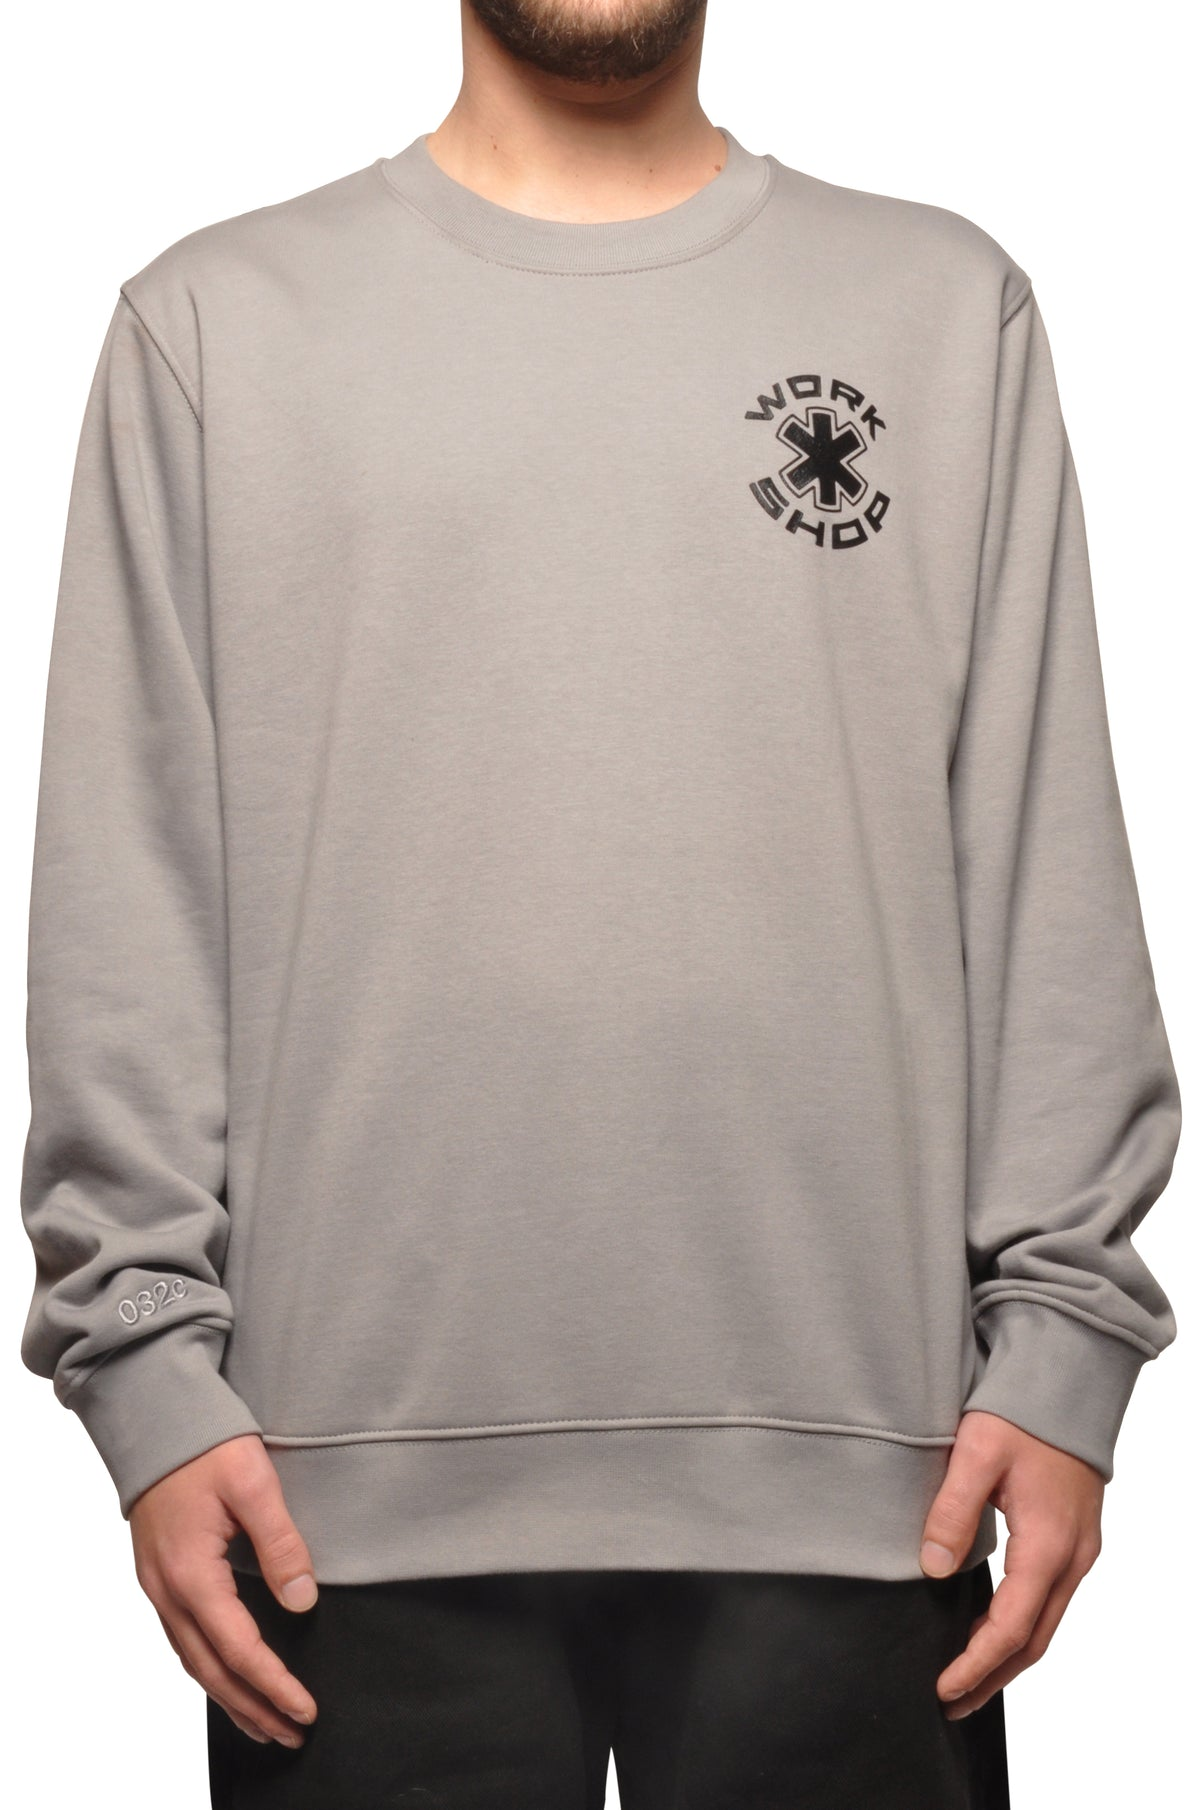 032c COSMIC WORKSHOP Sweatshirt Grey - 032c